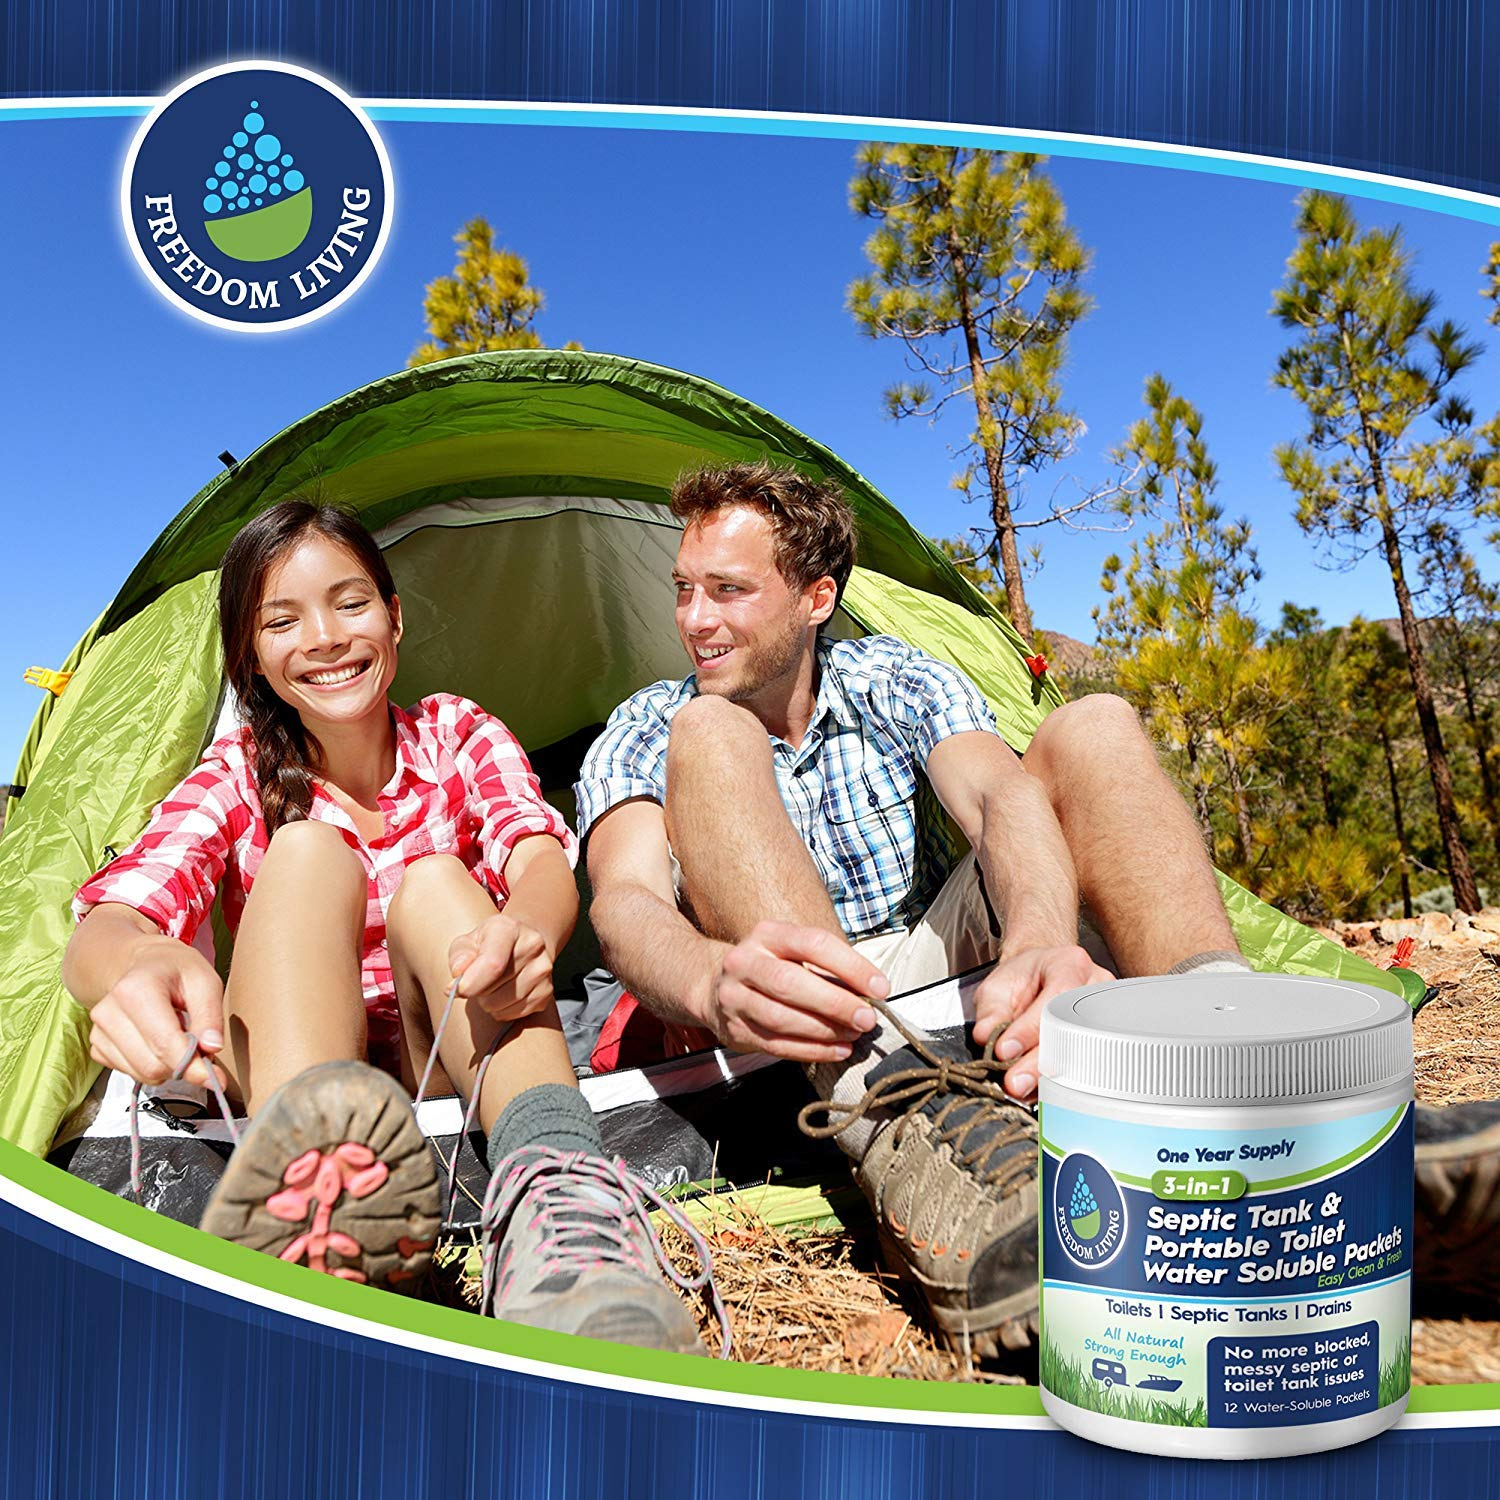 Septic Tank Treatment & Holding Tank Deodorizer Tablets, 1 year supply, Bio clean Packs for RV, Marine Portable Toilets, toilet cleaning chemicals, All Natural. Must have RV accessories by Freedom Living (Image #6)